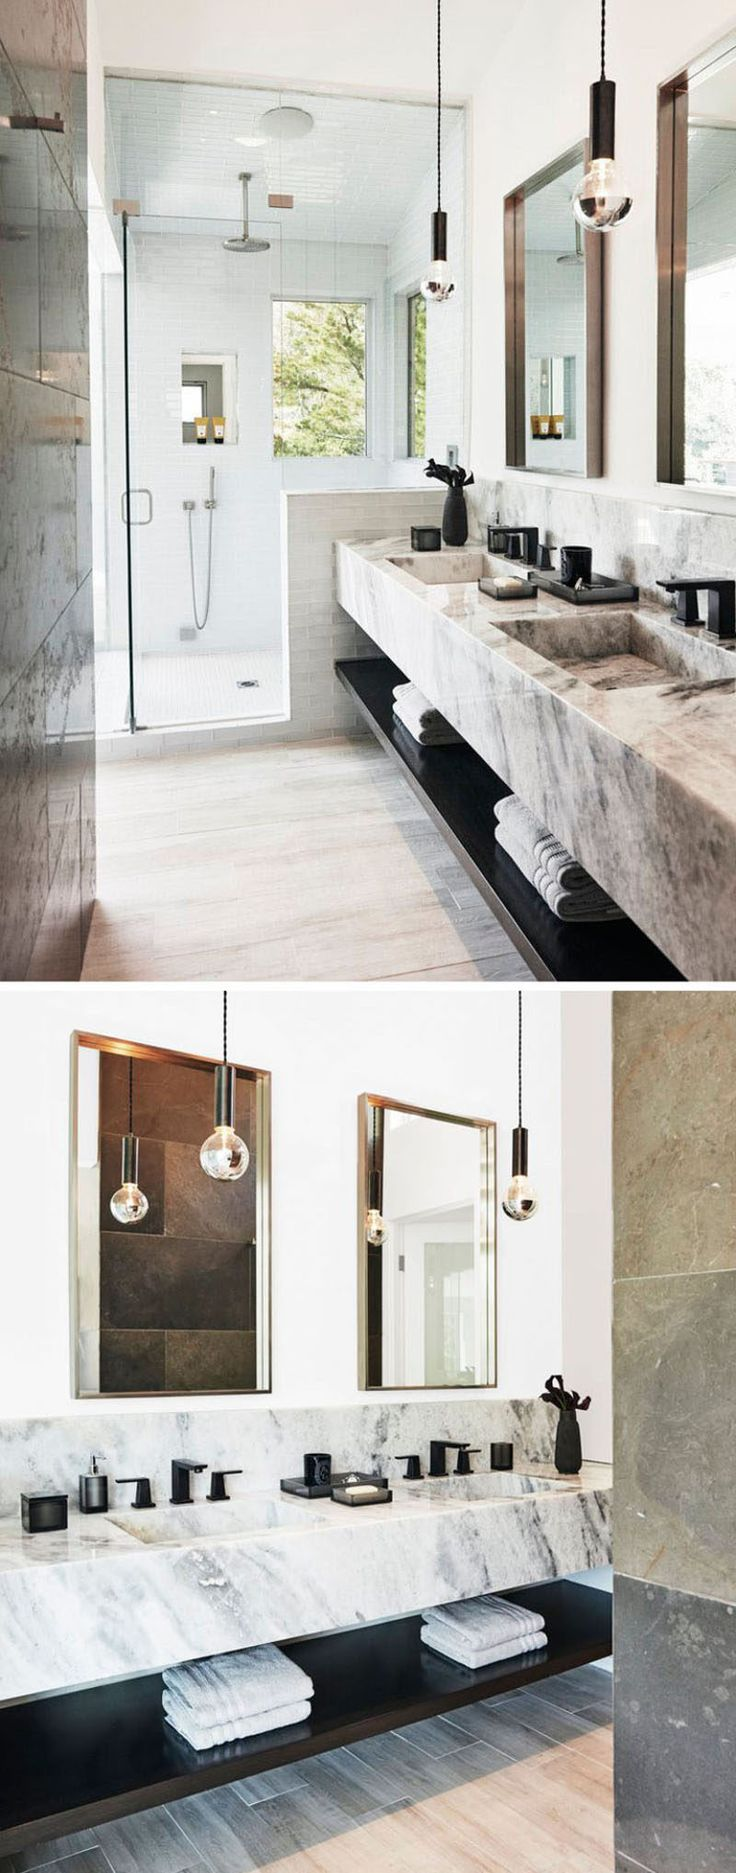 Bathroom Design Ideas - Open Shelf Below The Countertop // The dark shelf under this stone counter contrast the light materials in the bathroom and tie in the black hardware and accessories.